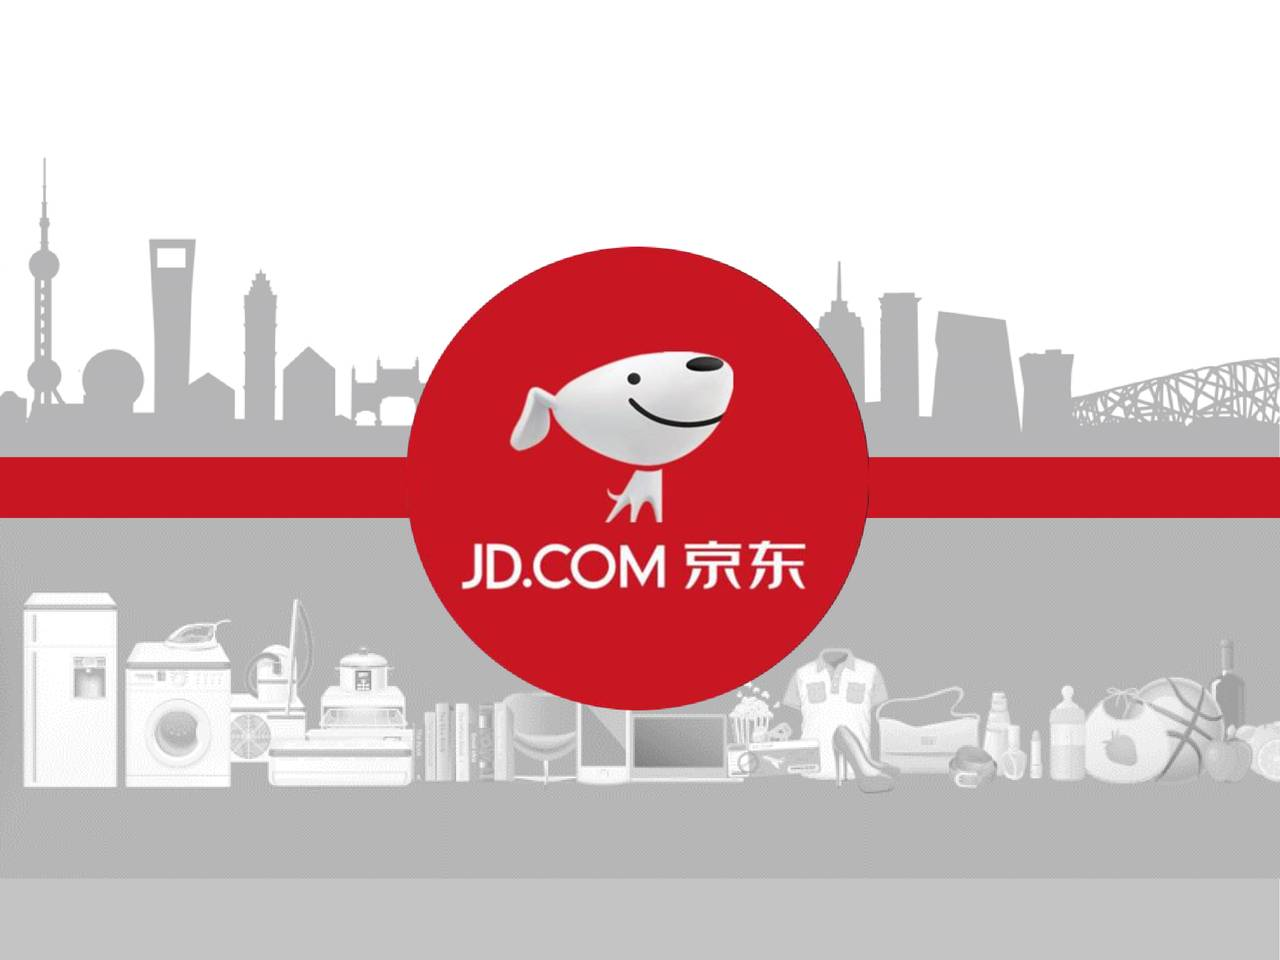 Chinese Retail Giant JD.com Launches Enterprise Blockchain-as-a-Service Platform